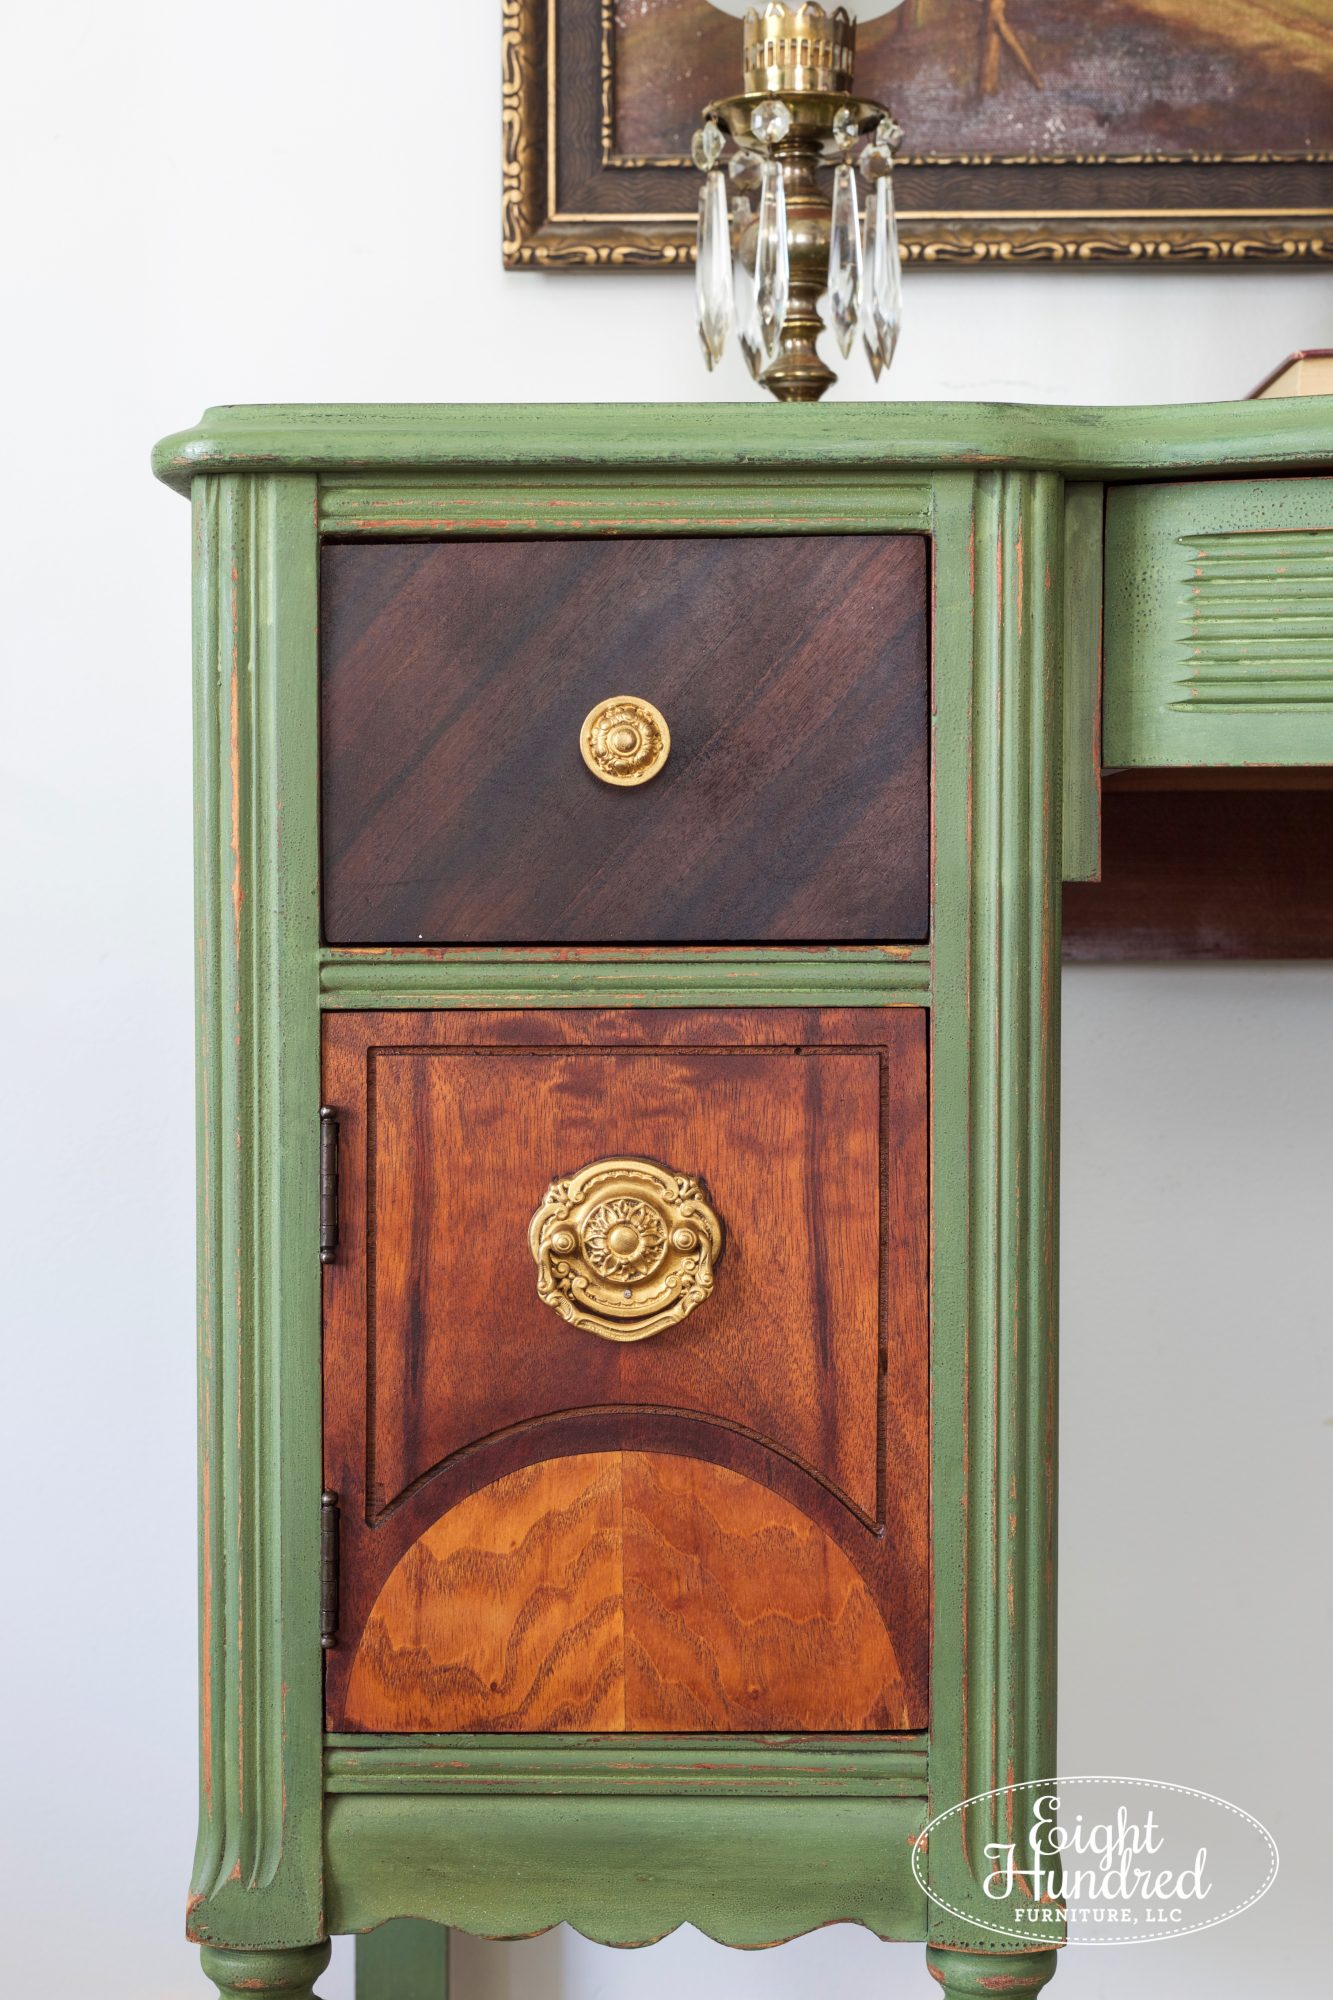 Doors and drawers finished in Hemp Oil and Furniture Wax on Boxwood Milk Painted Makeup Vanity